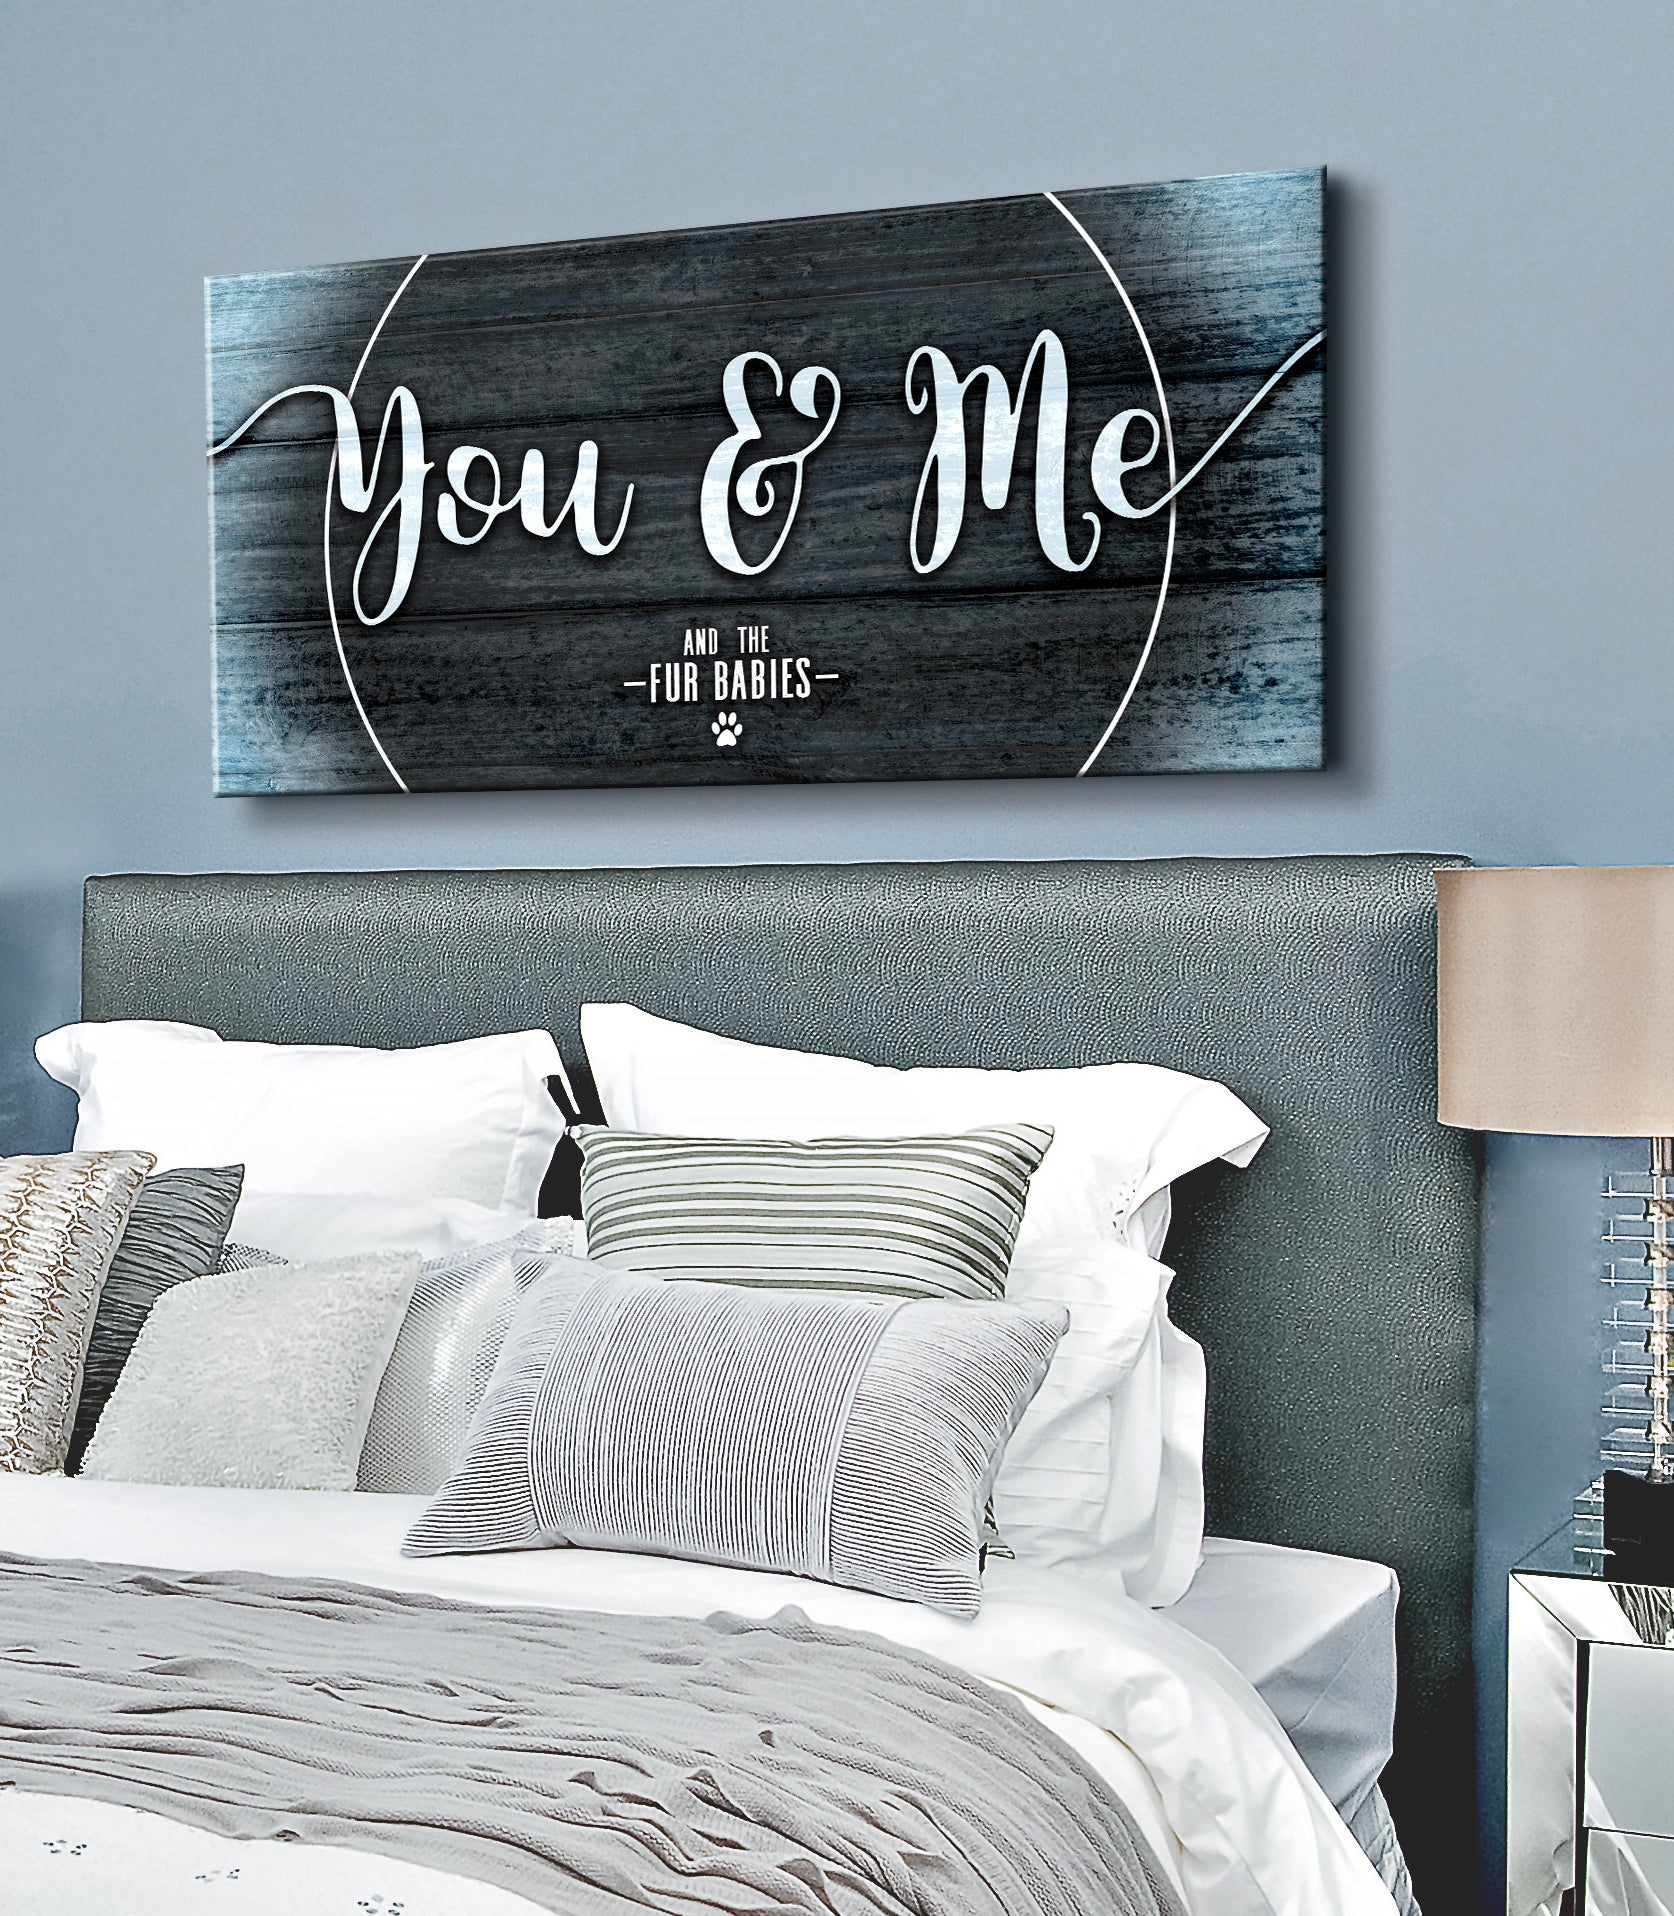 Pet Wall Art: You & Me and the fur babies (Wood Frame Ready To Hang)